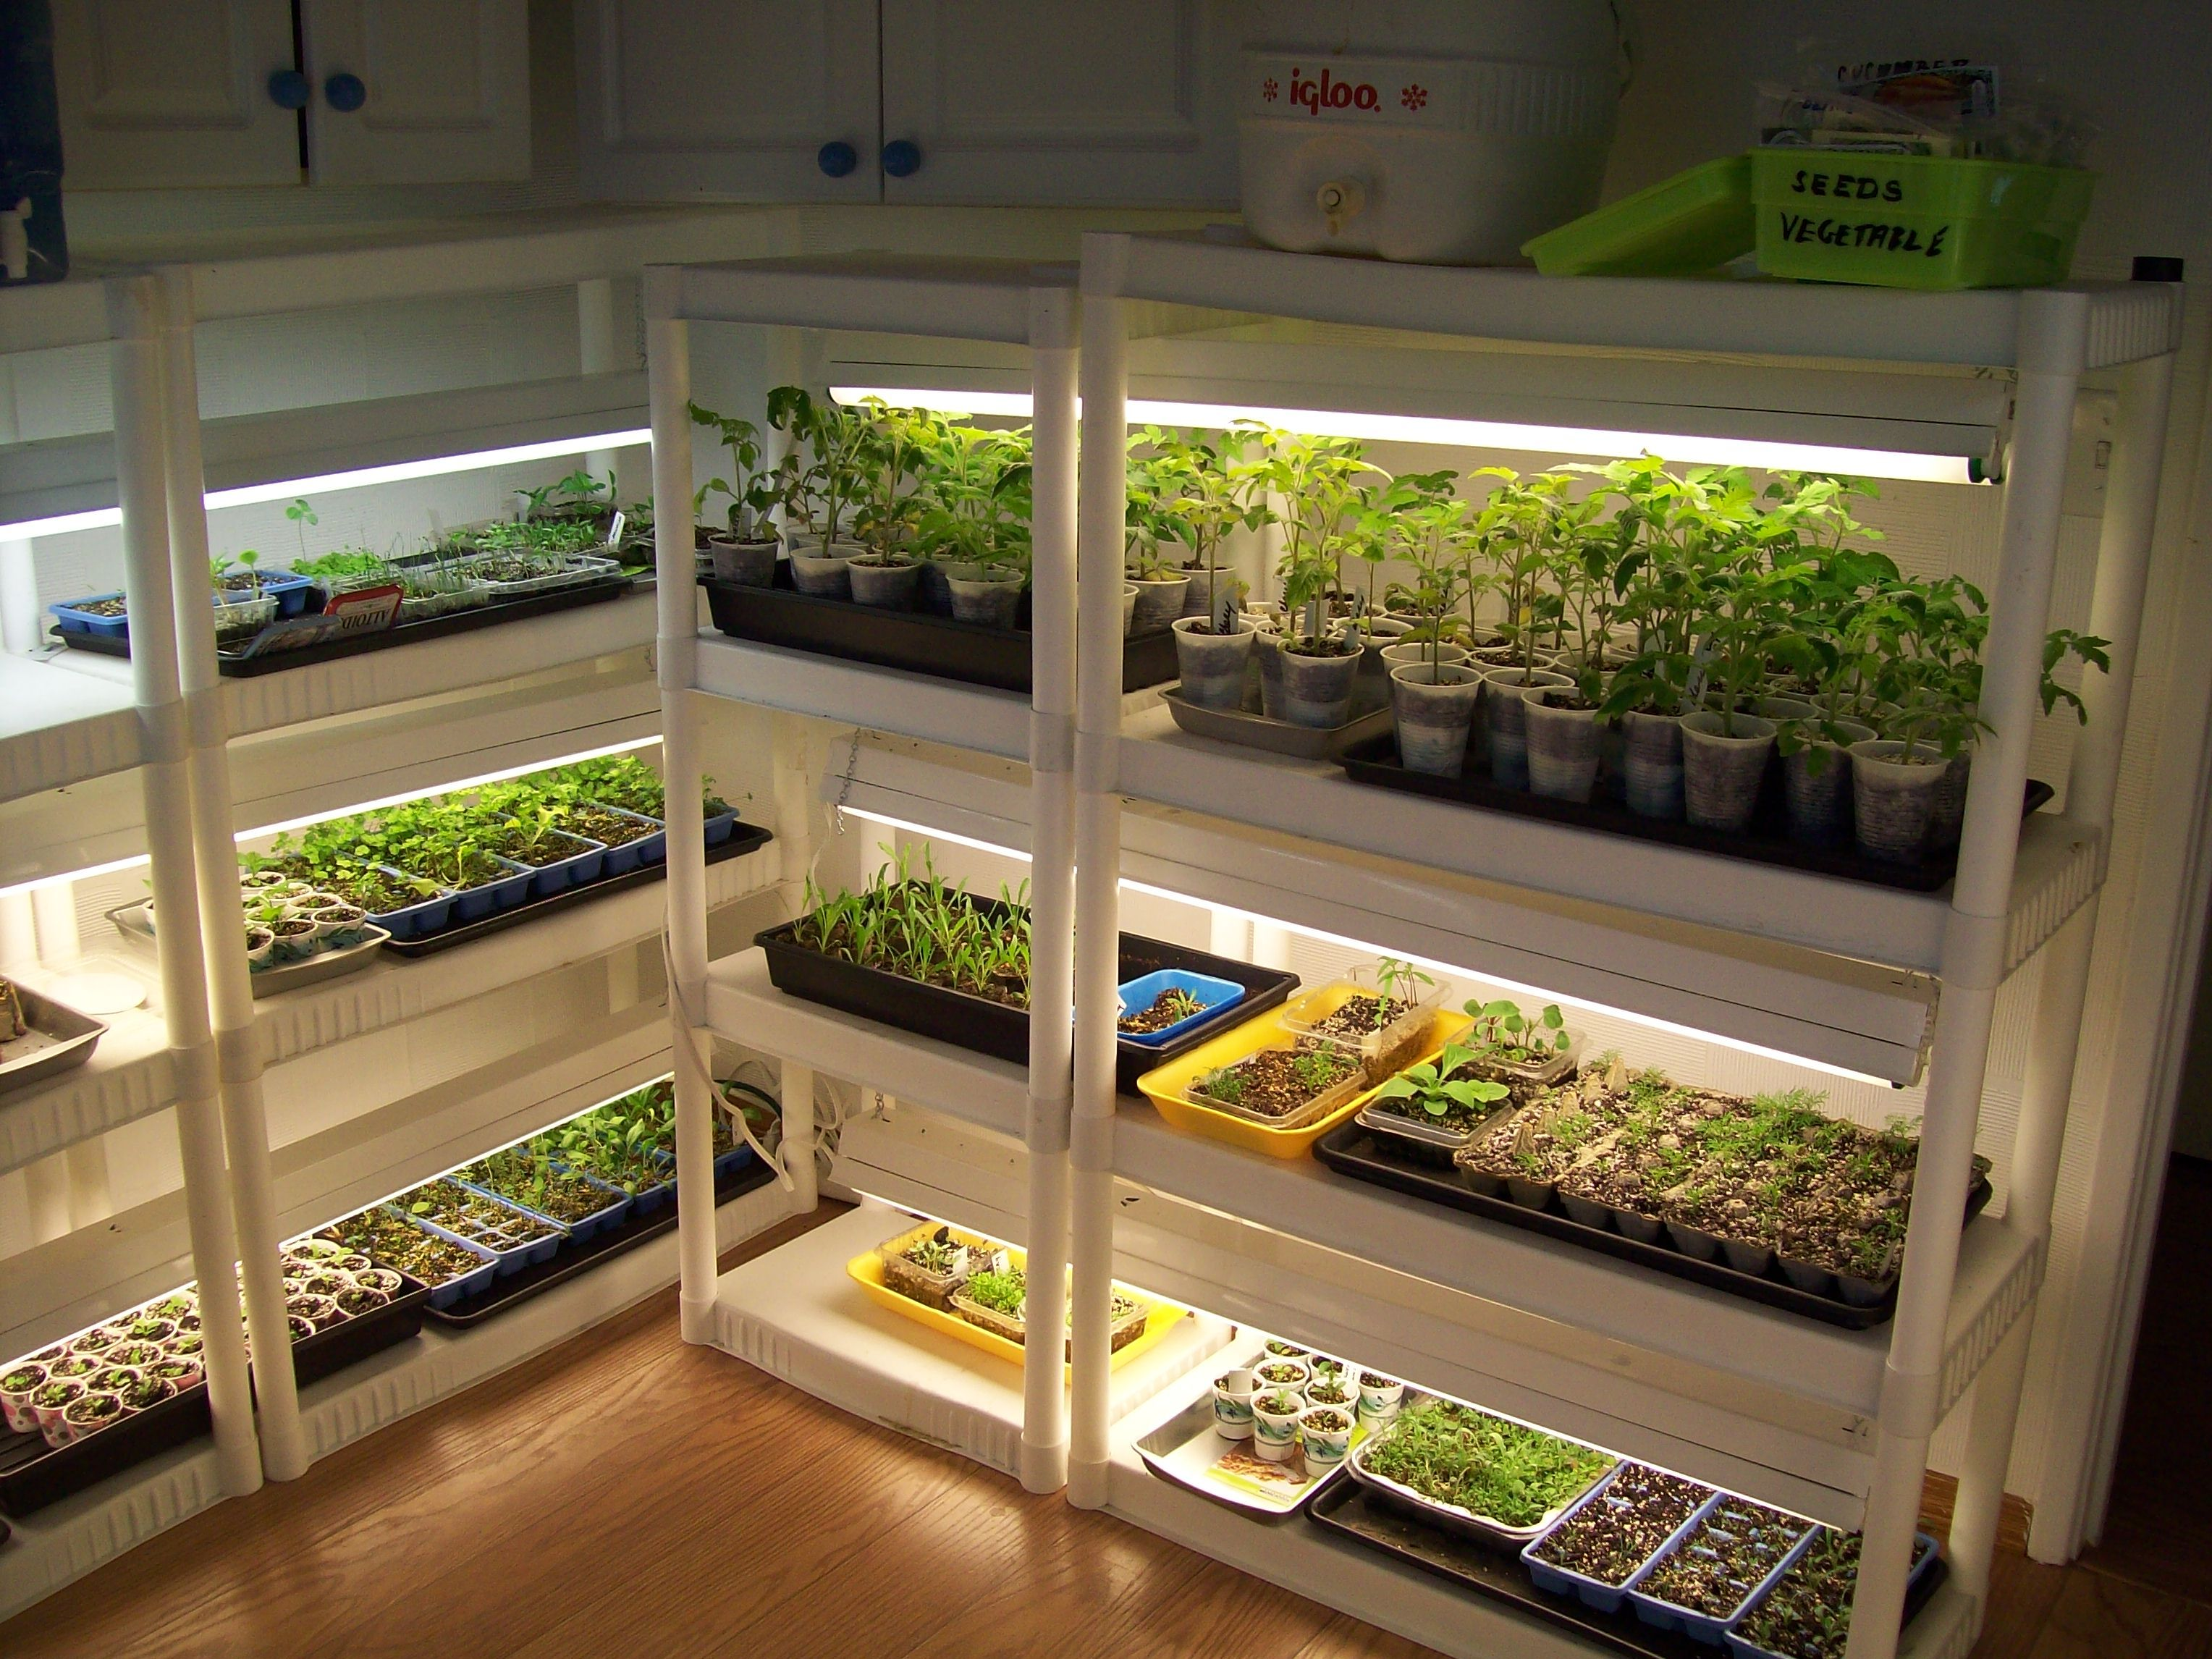 Plant Shelving Indoor Cheap Snap Together Shelves And Shop Lights Make For A